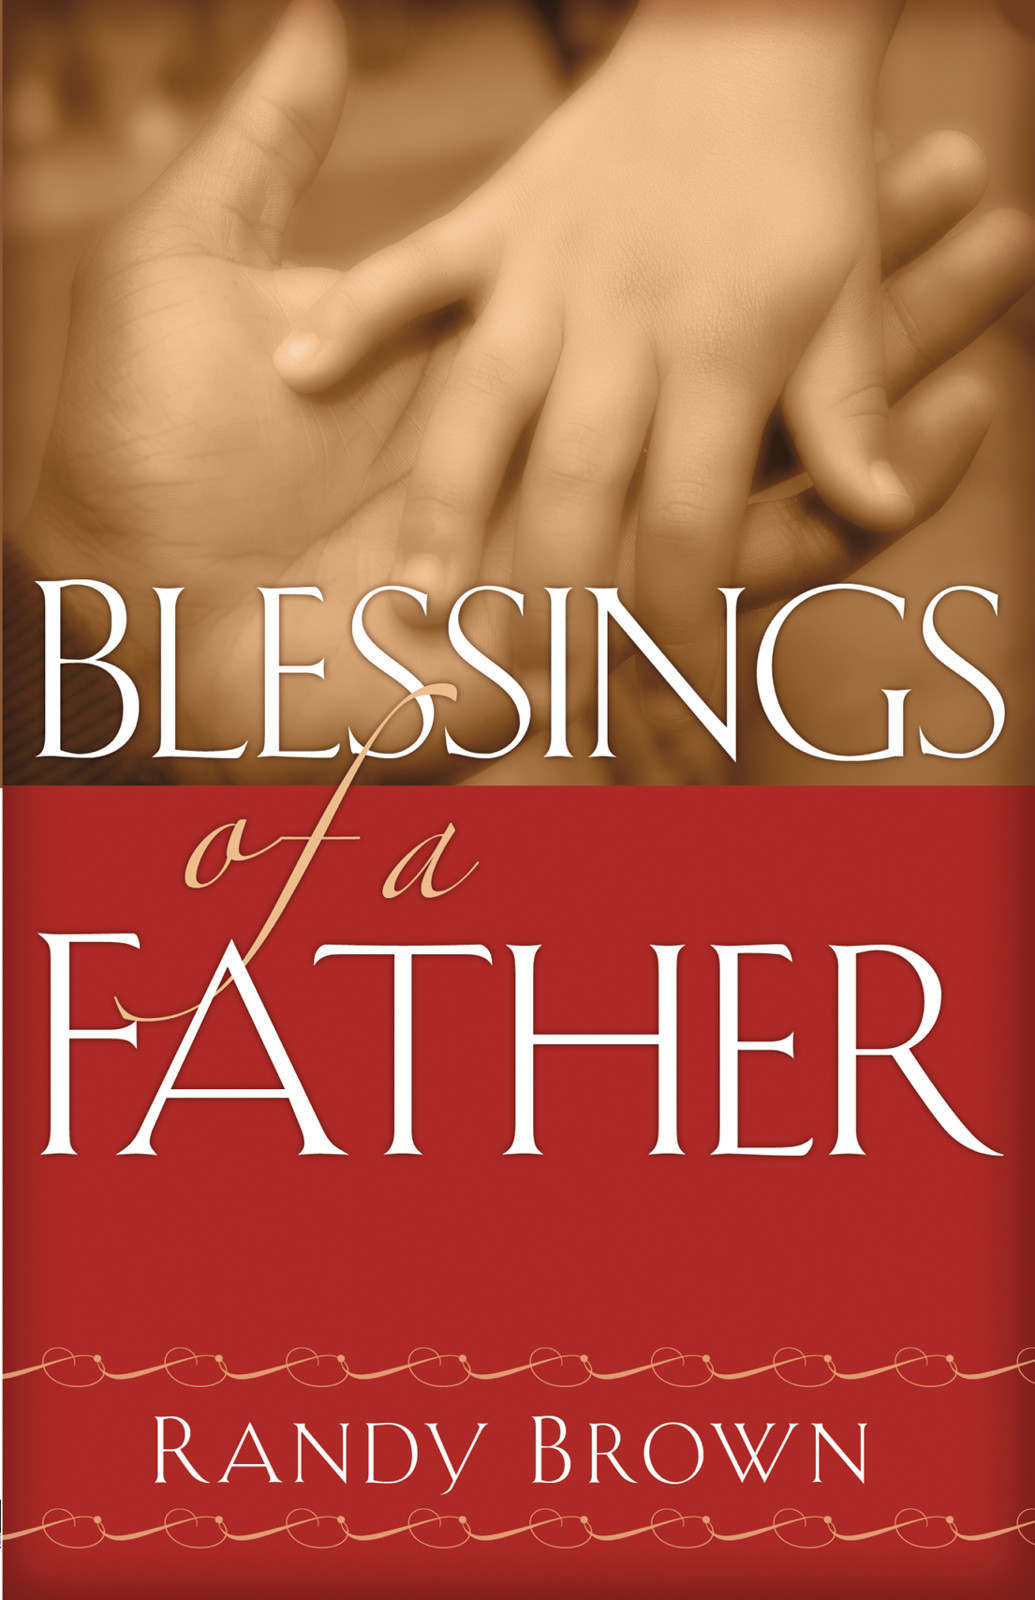 Blessings of a Father